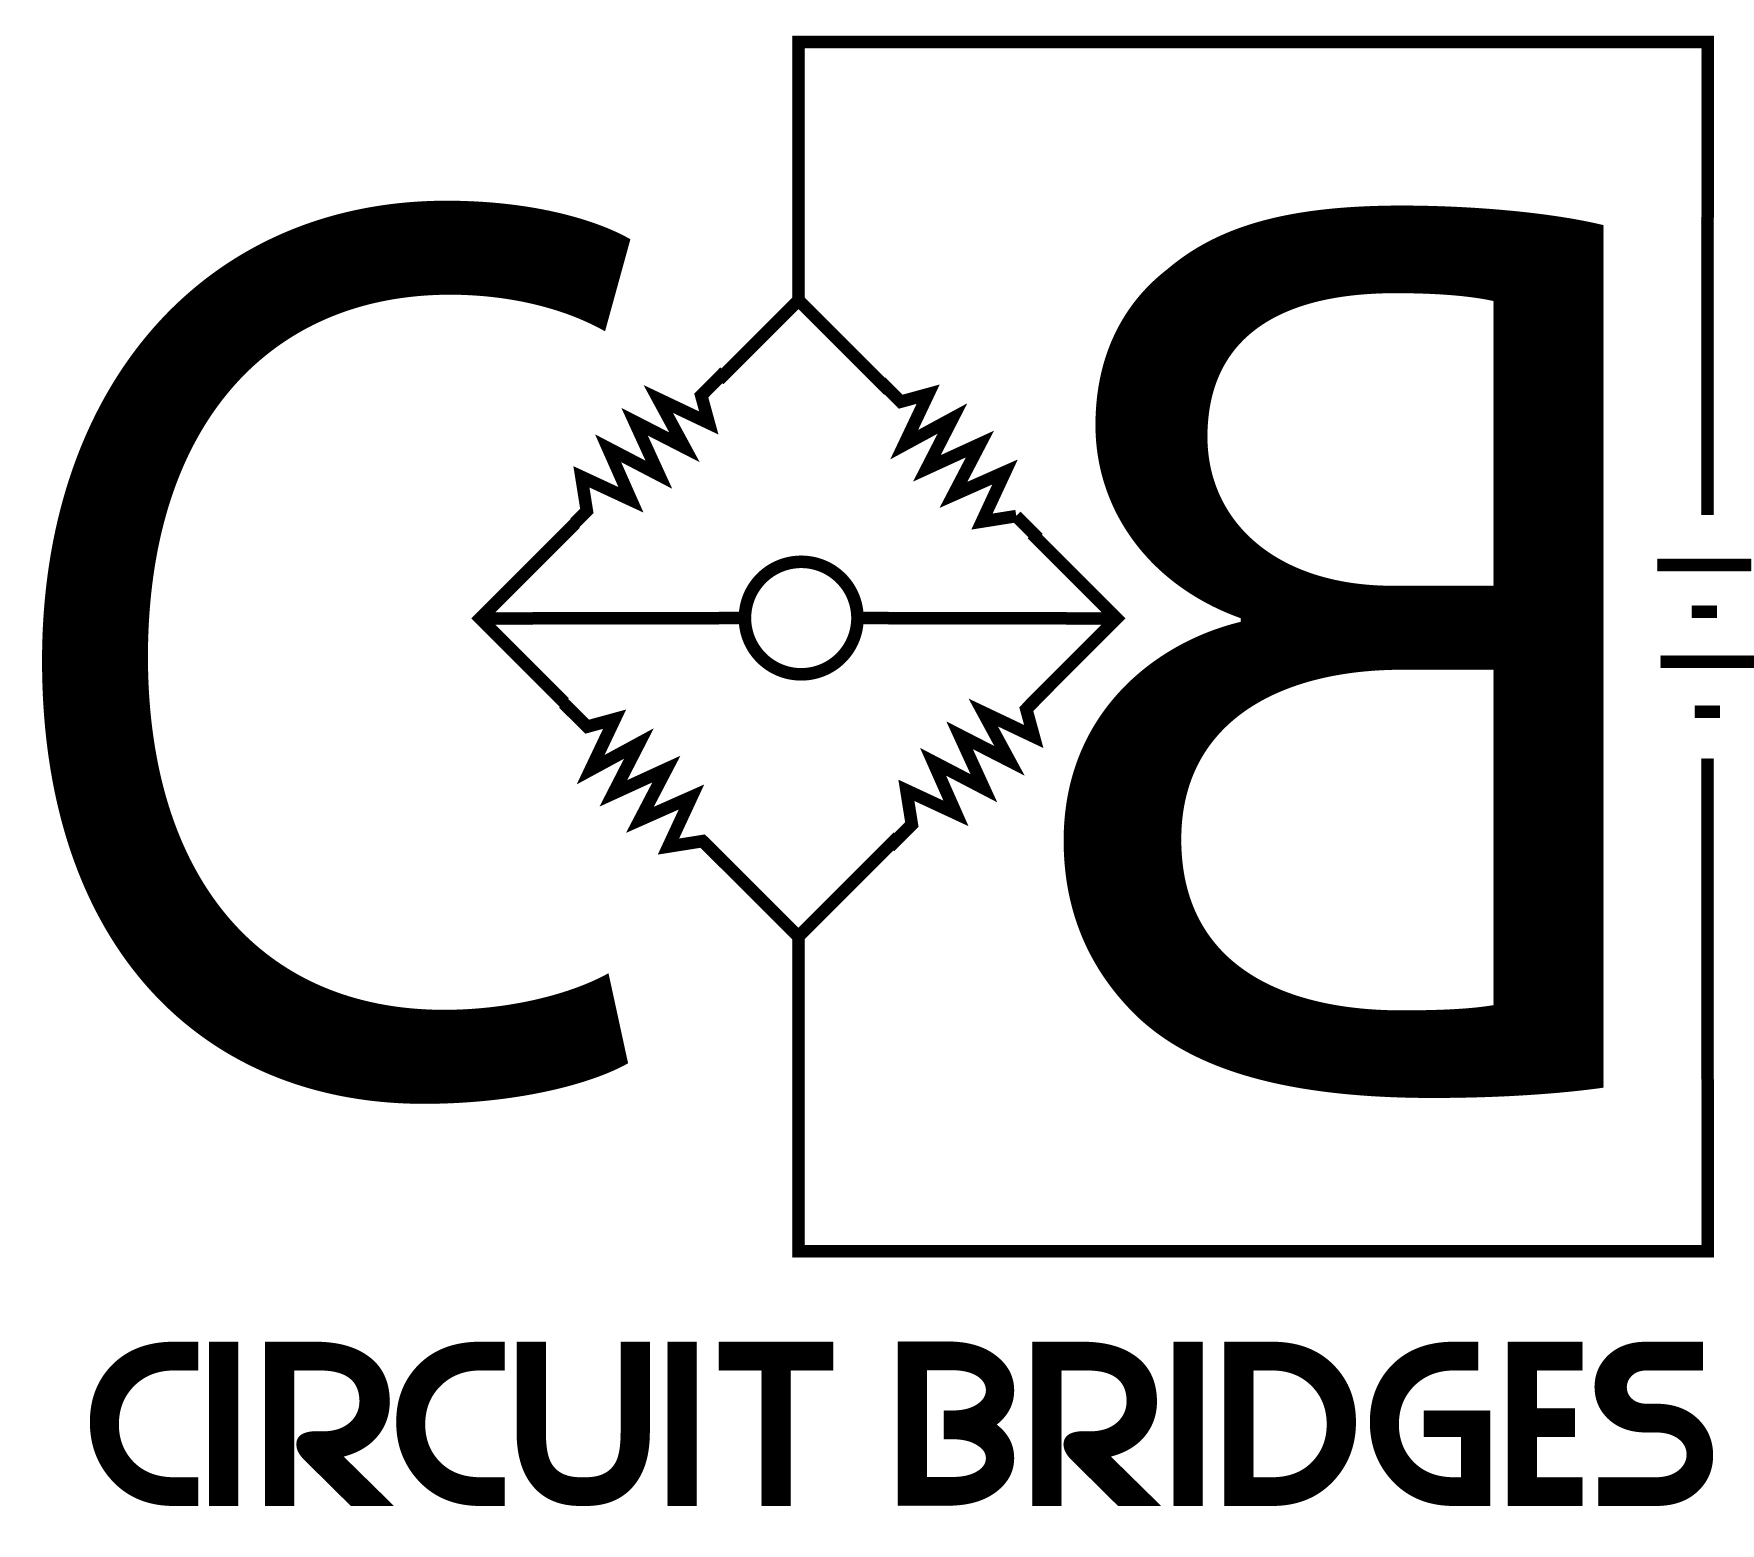 Circuit Bridges